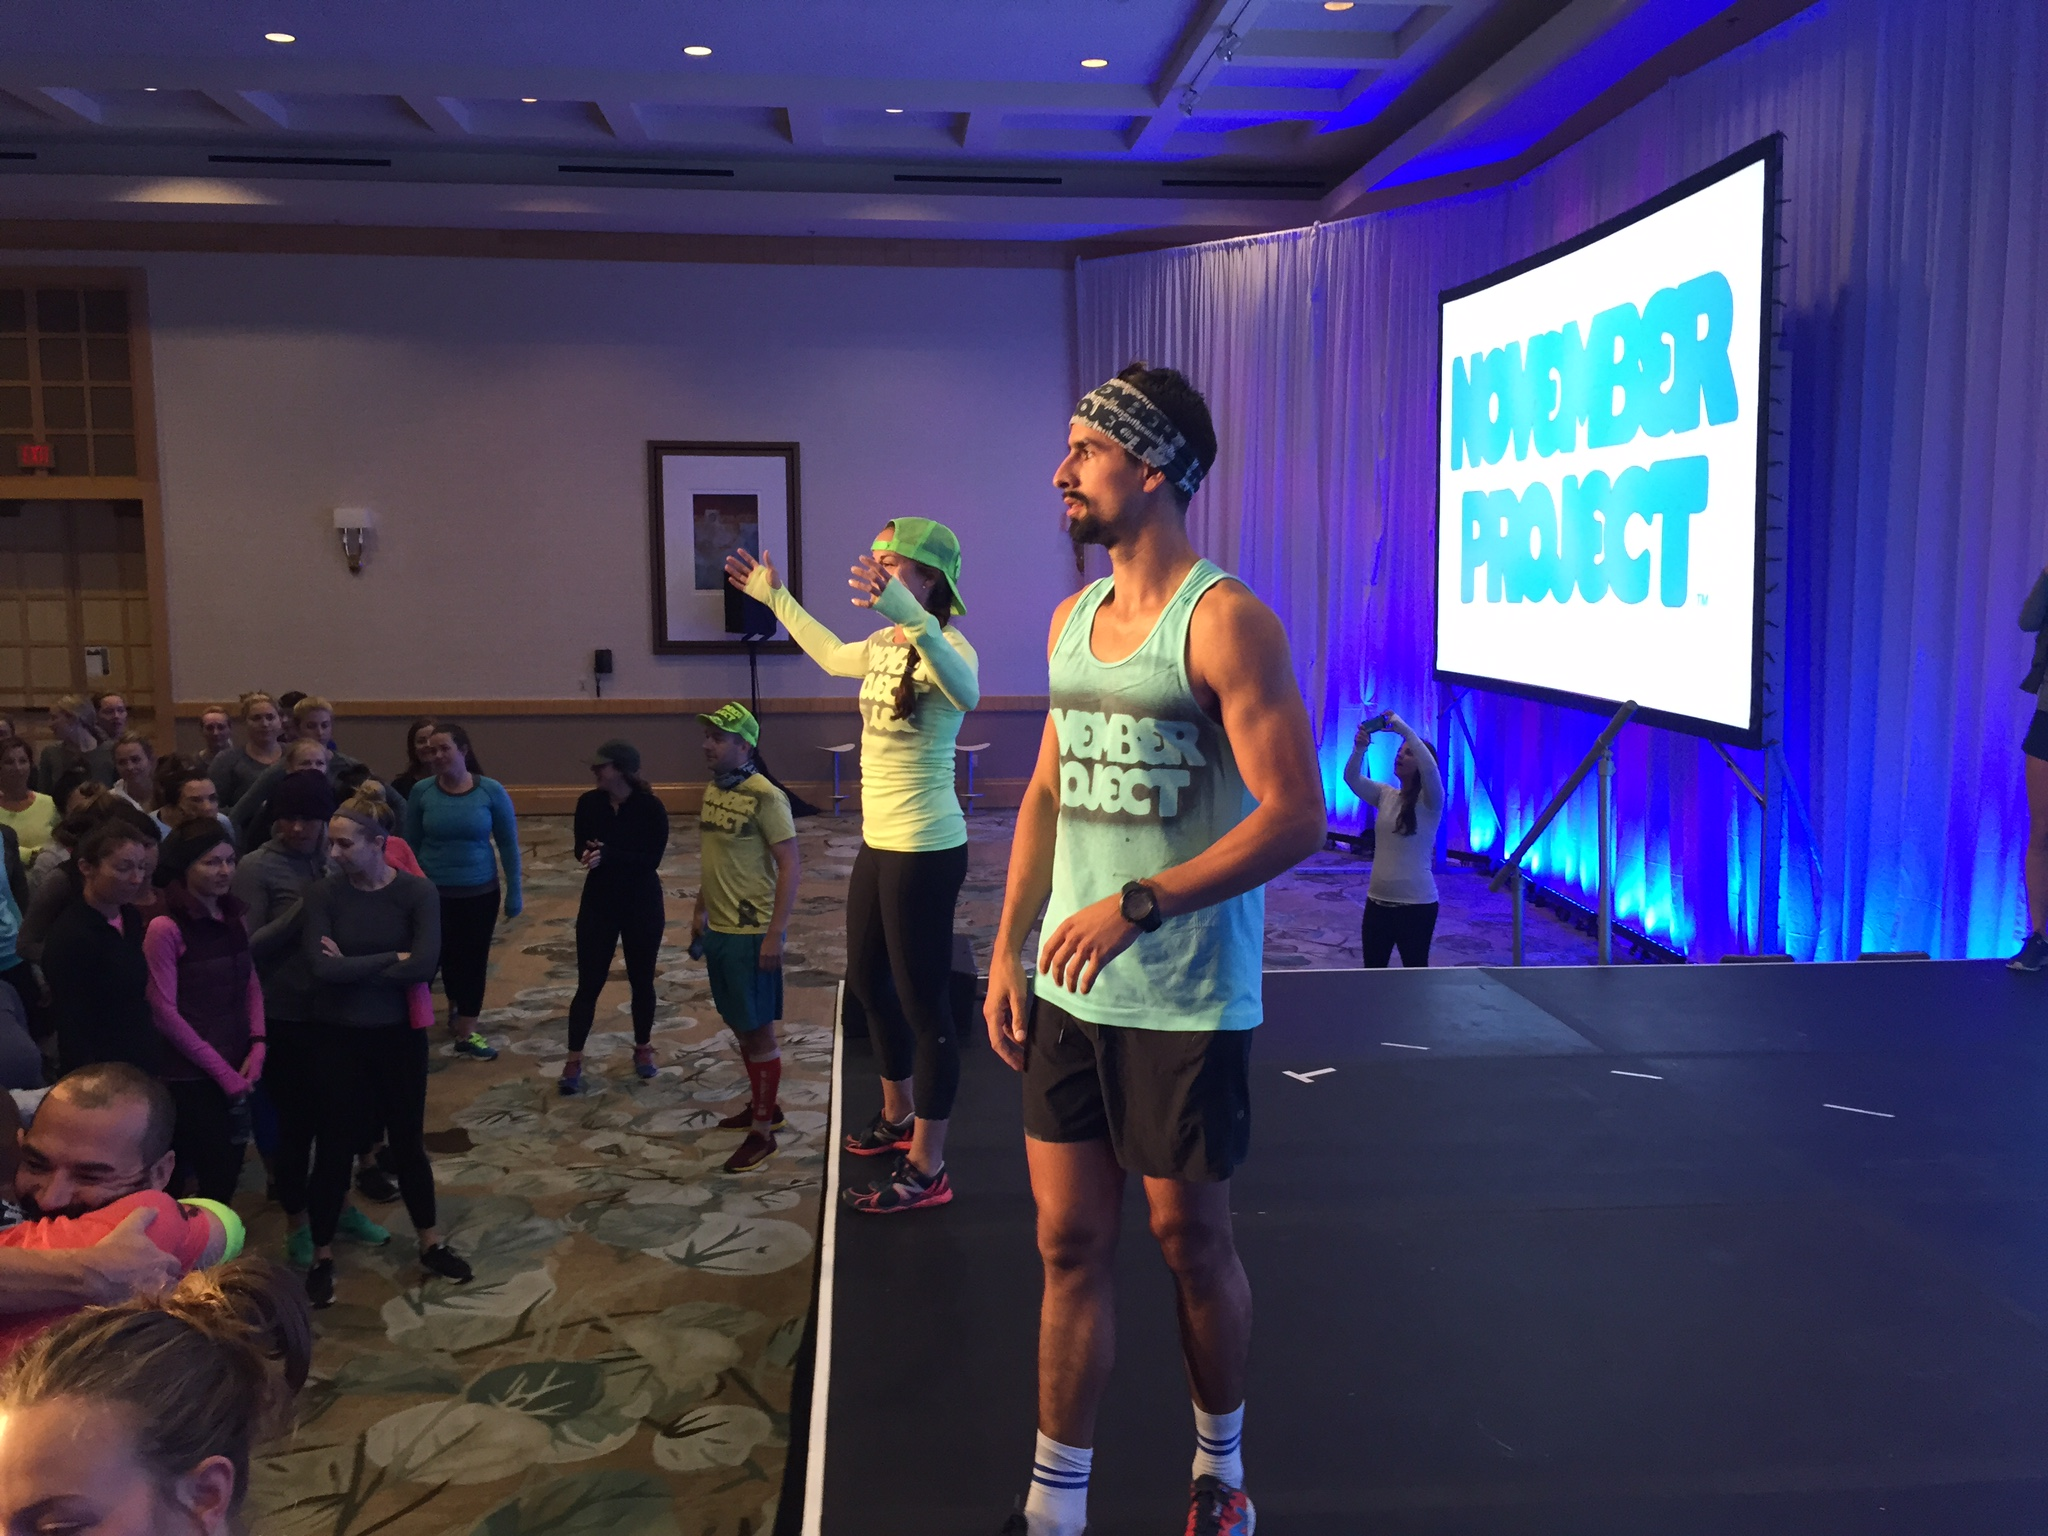 November Project - San Diego co-leaders and Lululemon Ambassadors, Lauren Padula and Angelo Neroni led a workout of more than 400 on Wednesday morning.